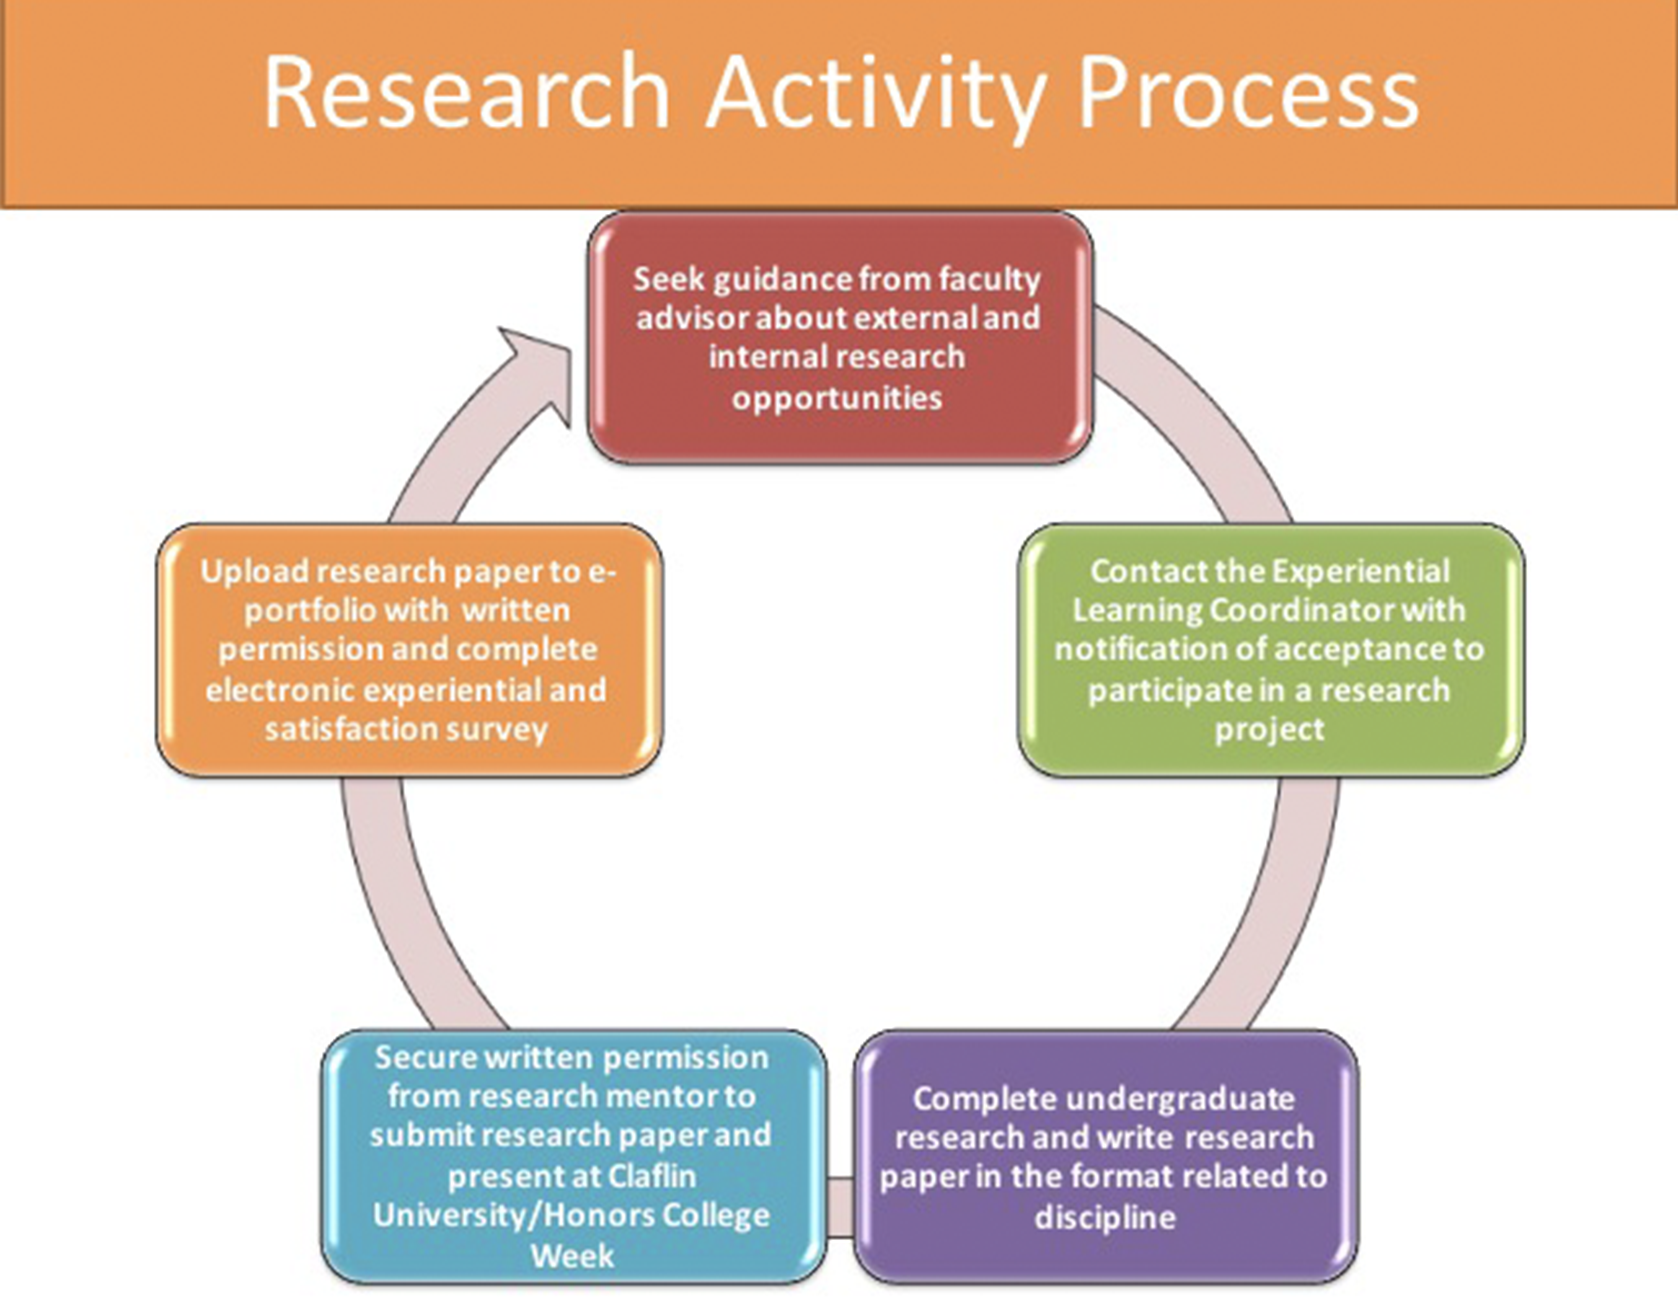 Research activity process